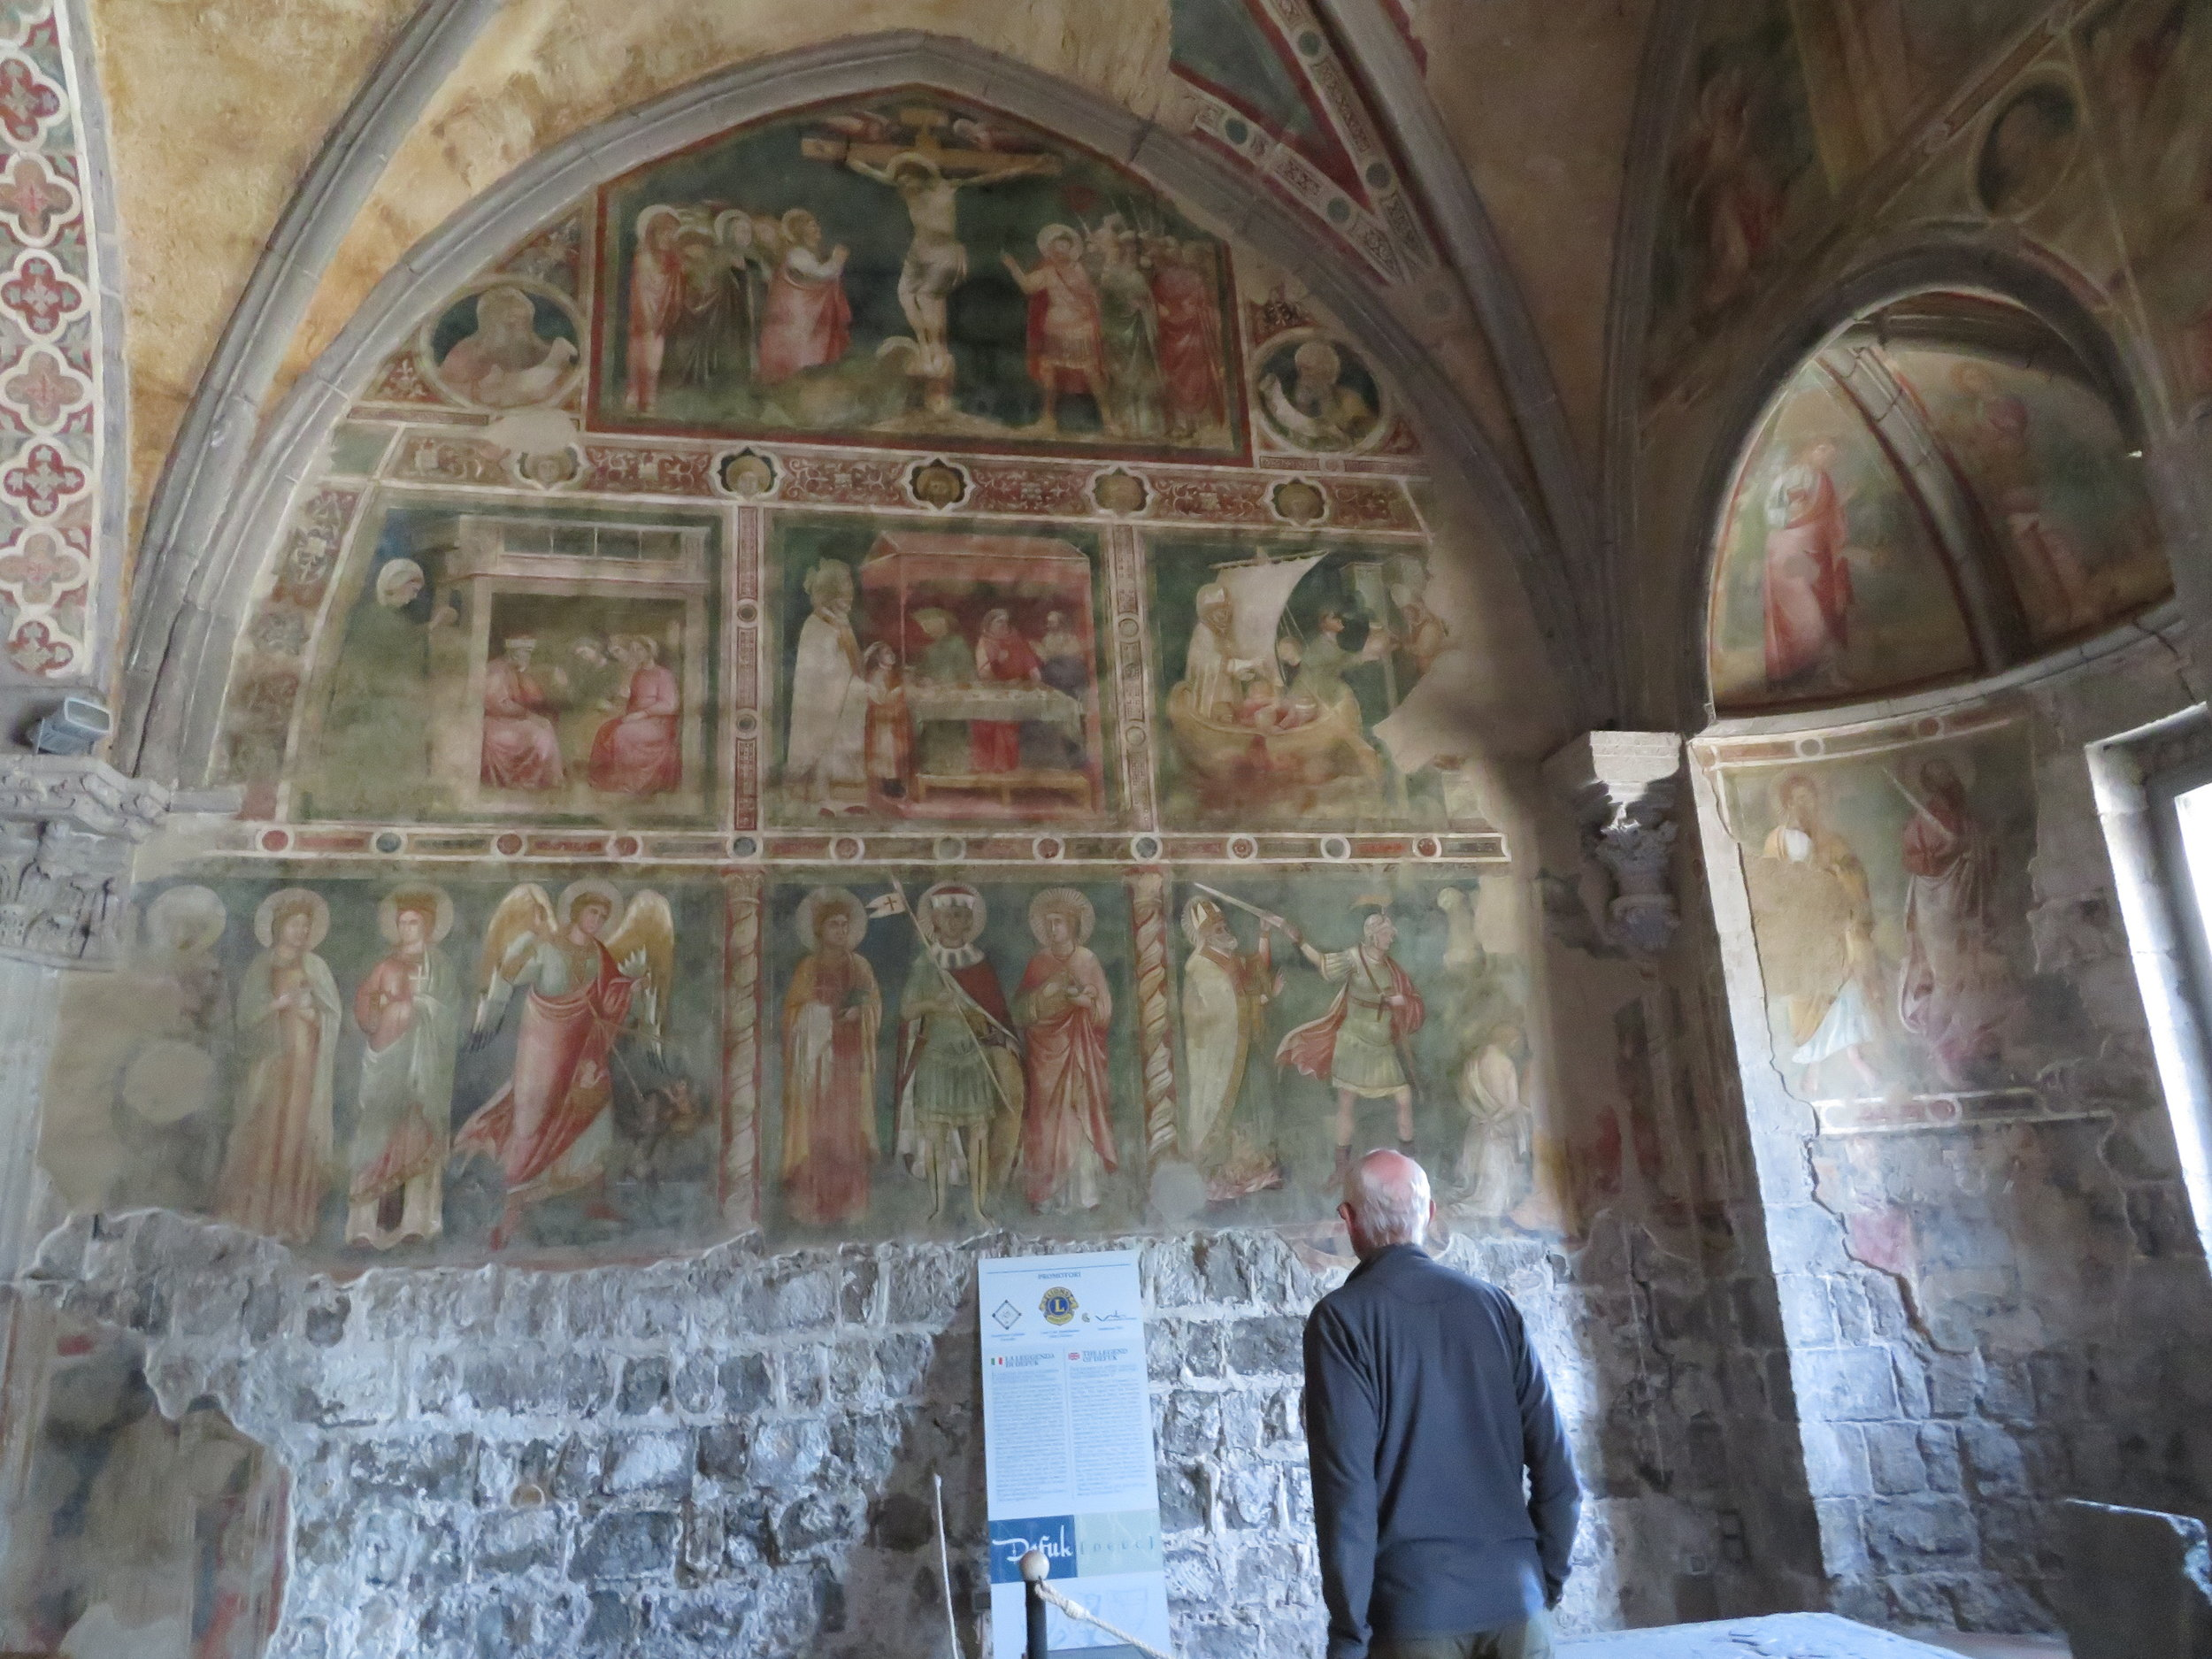 The frescoed walls were amazing.